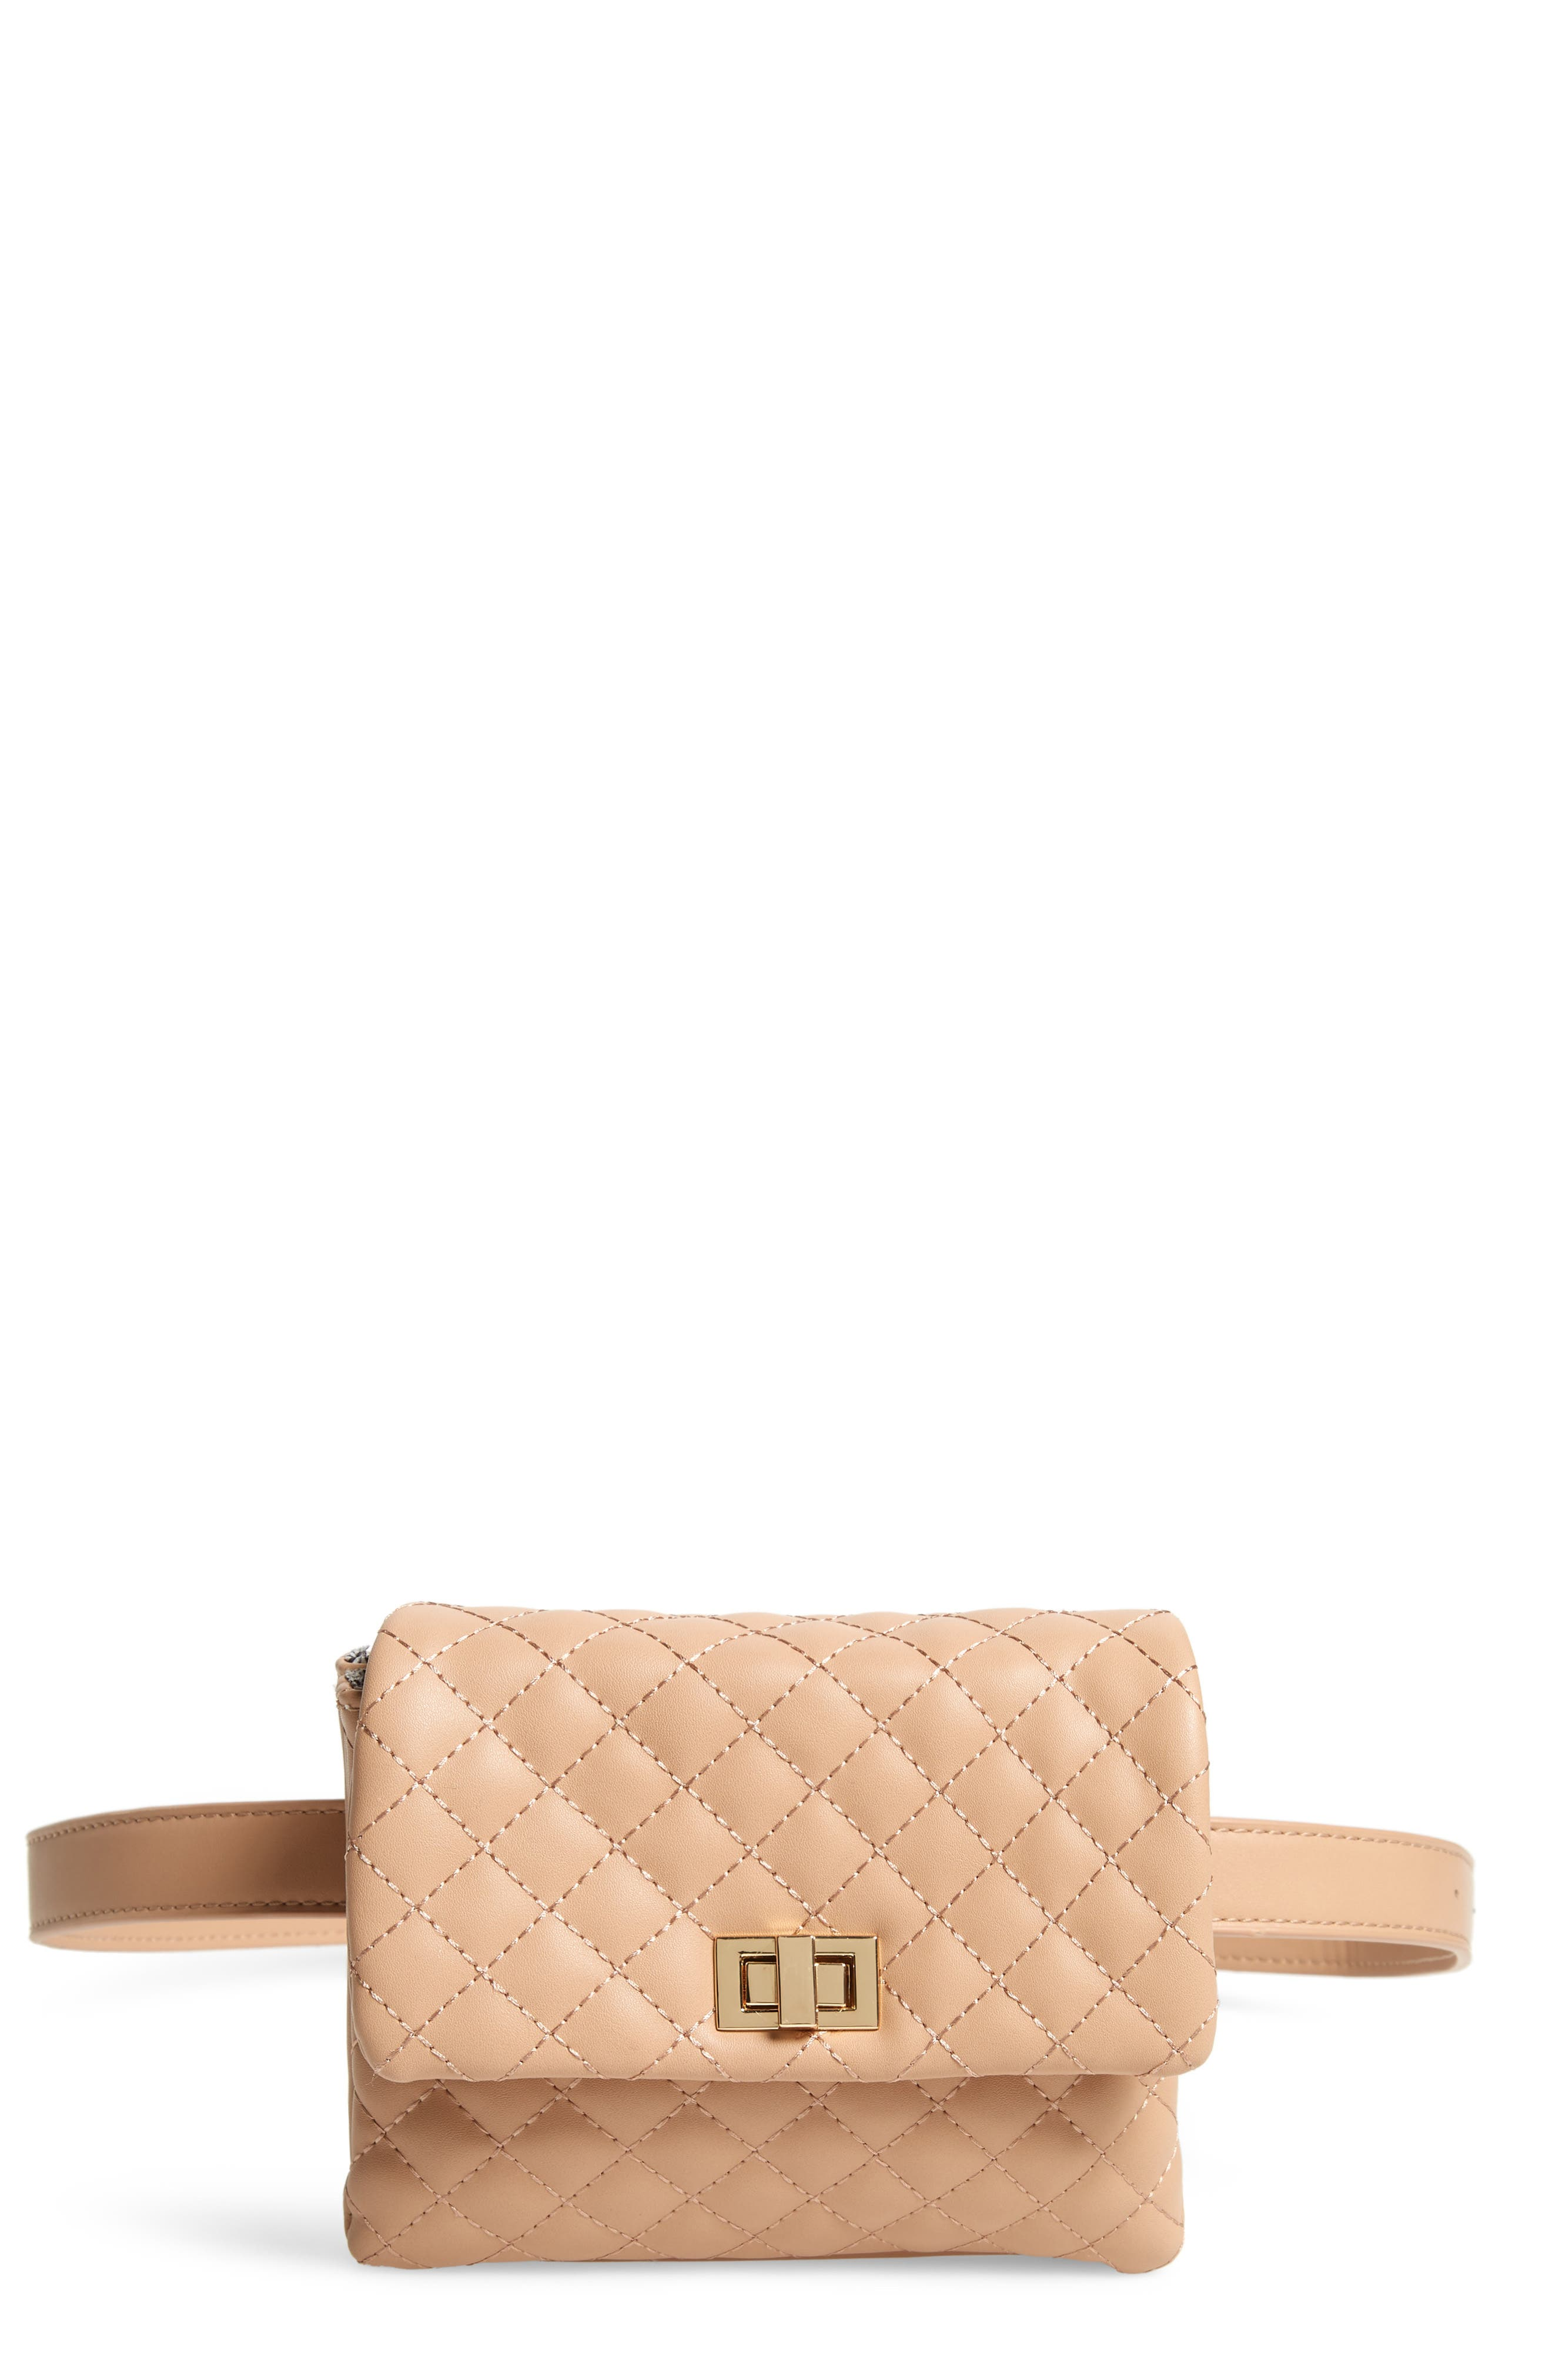 MALI + LILI, Quilted Vegan Leather Belt Bag, Main thumbnail 1, color, CAMEL